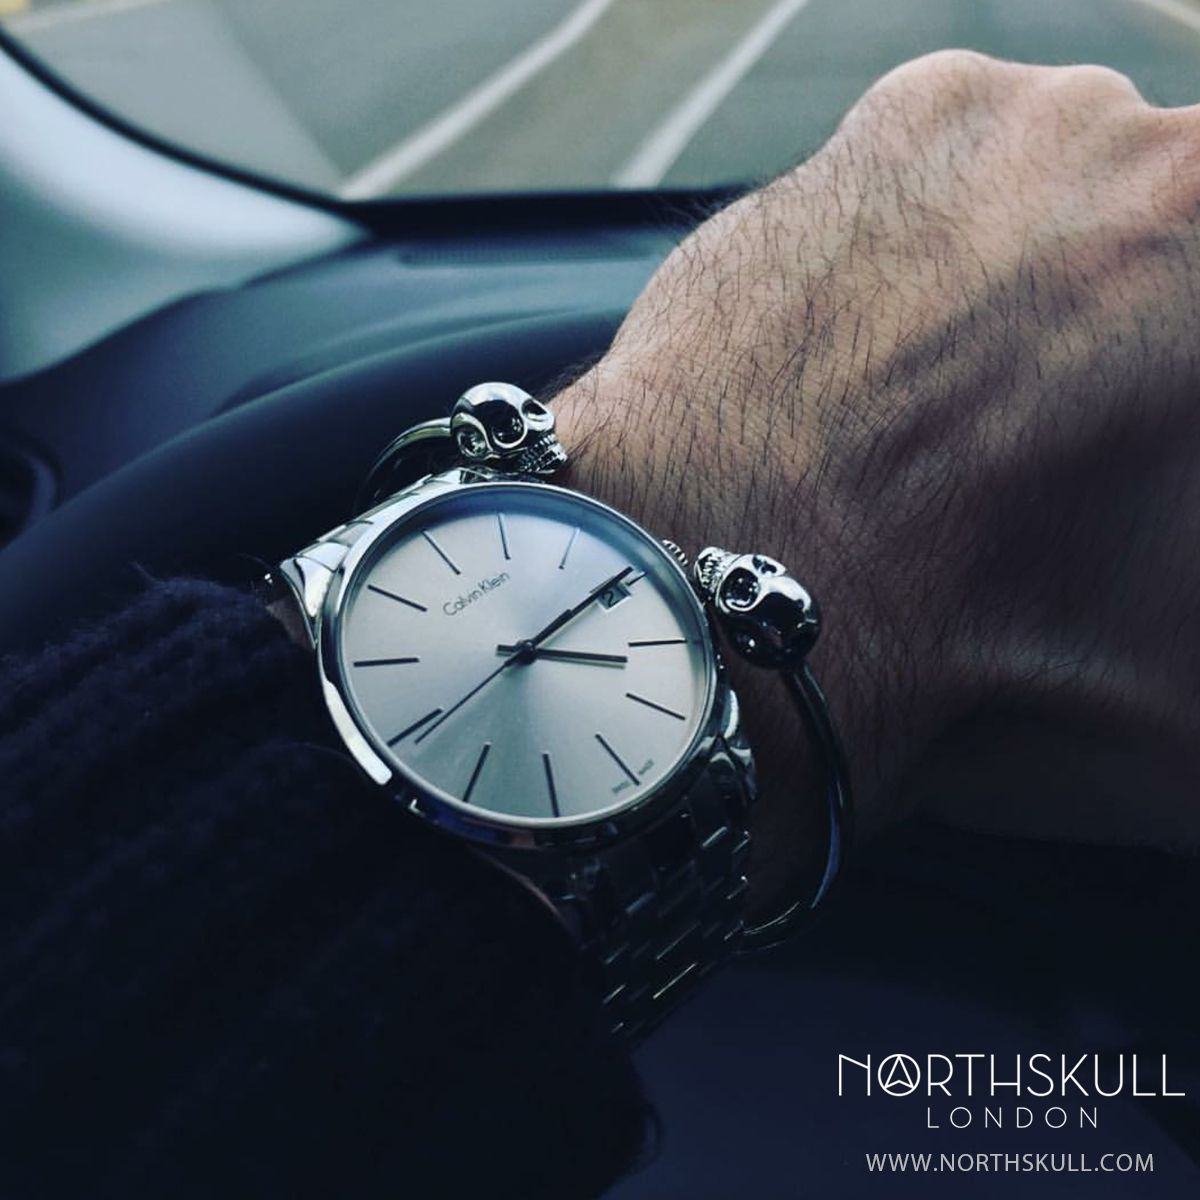 Fan Instagram Pic !   @Giordanolamantia posted a cool photo of his Calvin Klein Watch nicely paired with his newly arrived Northskull Silver Twin Skull Bangle. Nice combo  Available now at Northskull.com   For a chance to get featured post a cool photo of your Northskull jewelry with the tag #Northskullfanpic on Instagram